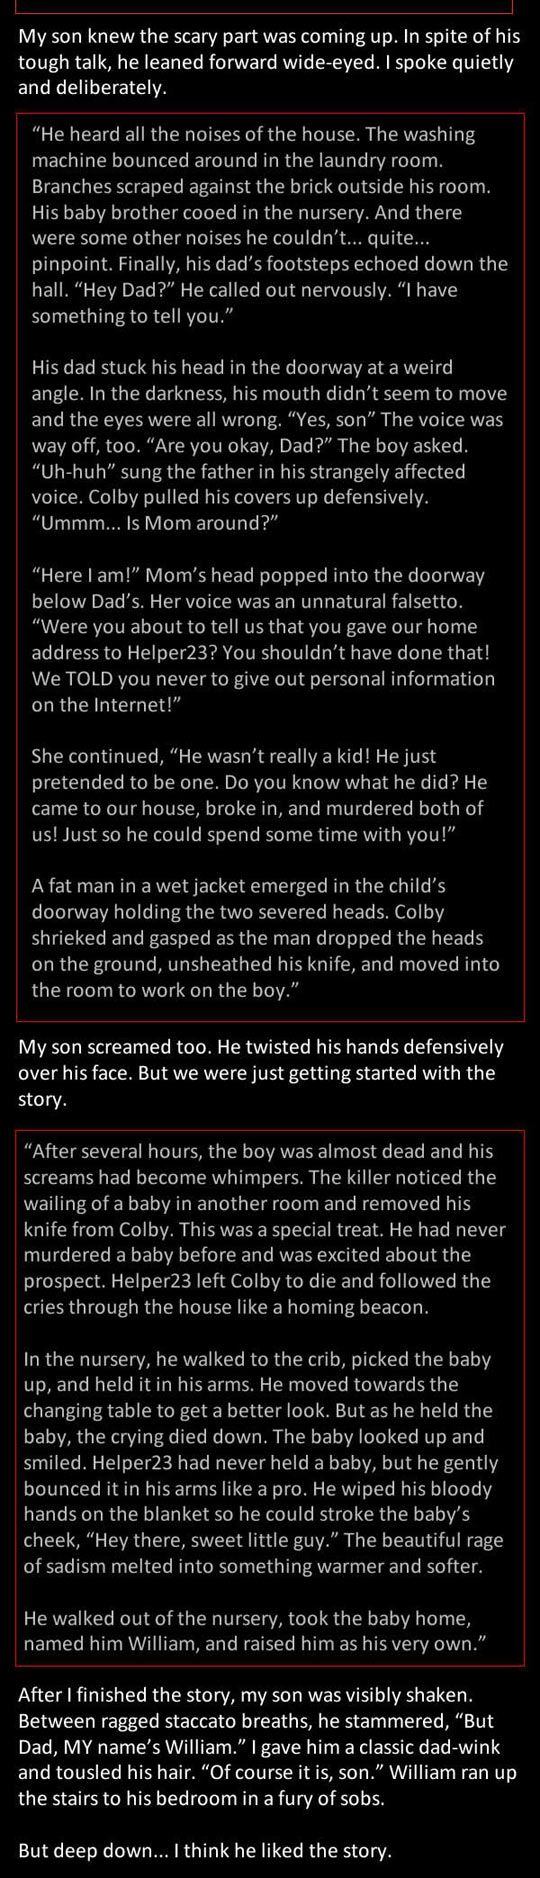 A Story to Scare My Son - (Continued) Creepypasta! ...This Is Horrifyingly Good!